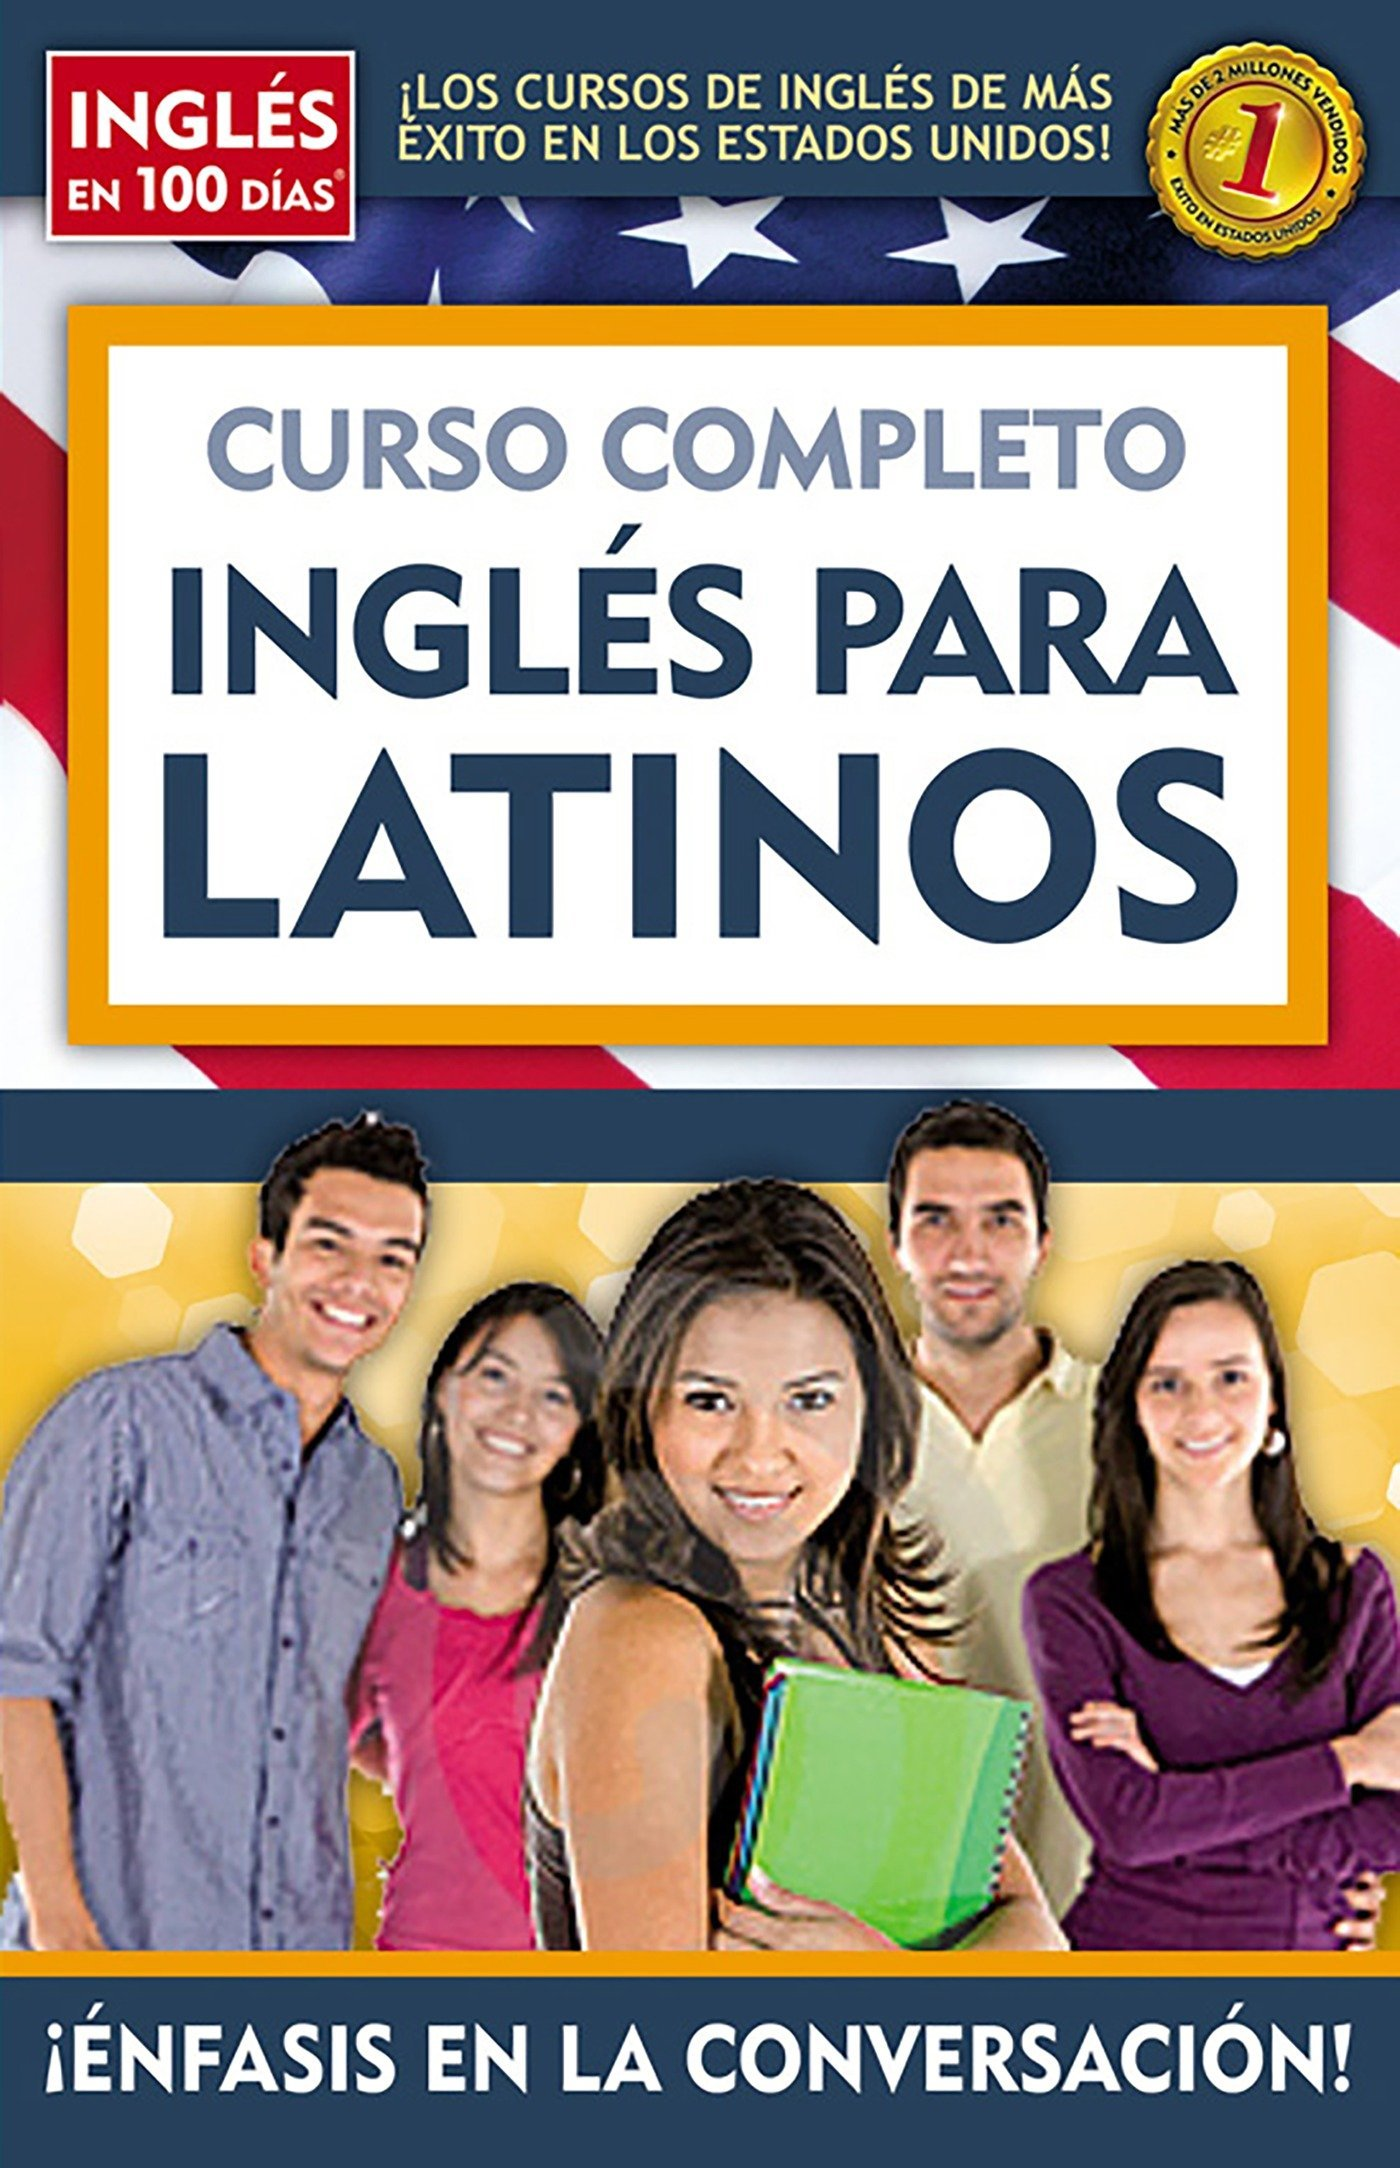 completo ingl%C3%A9s latinos Ingl%C3%A9s Spanish product image